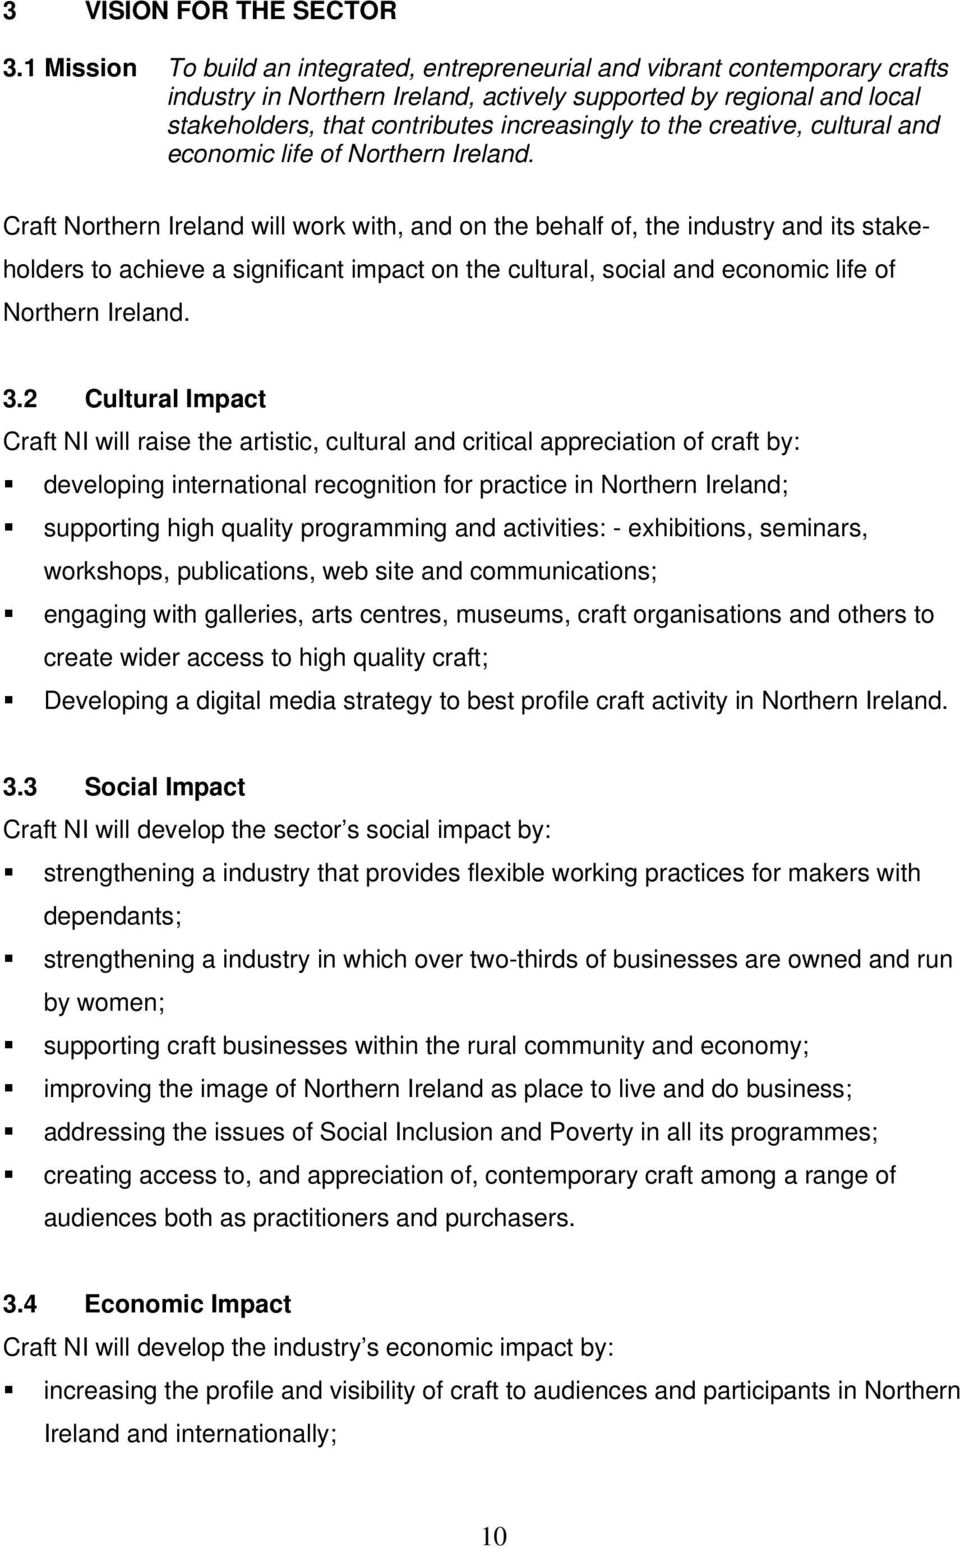 the creative, cultural and economic life of Northern Ireland.